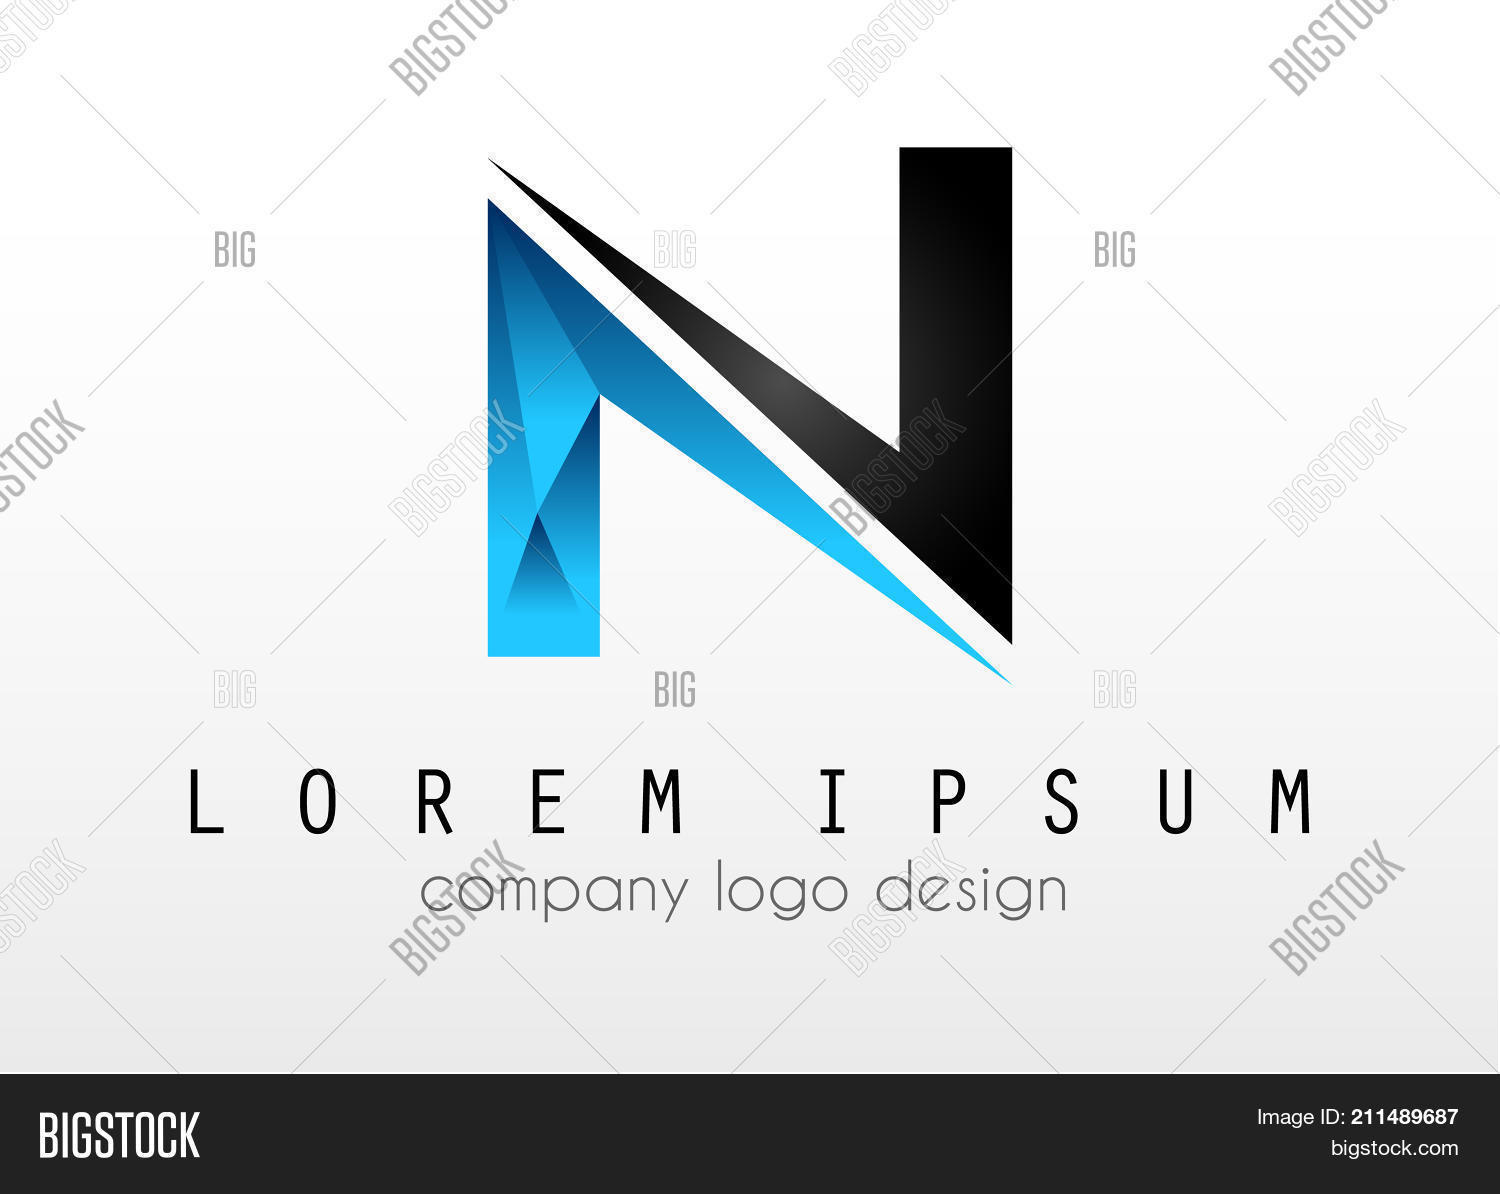 Creative Logo Letter N Design For Brand Identity Company Profile Or Corporate Logos With Clean